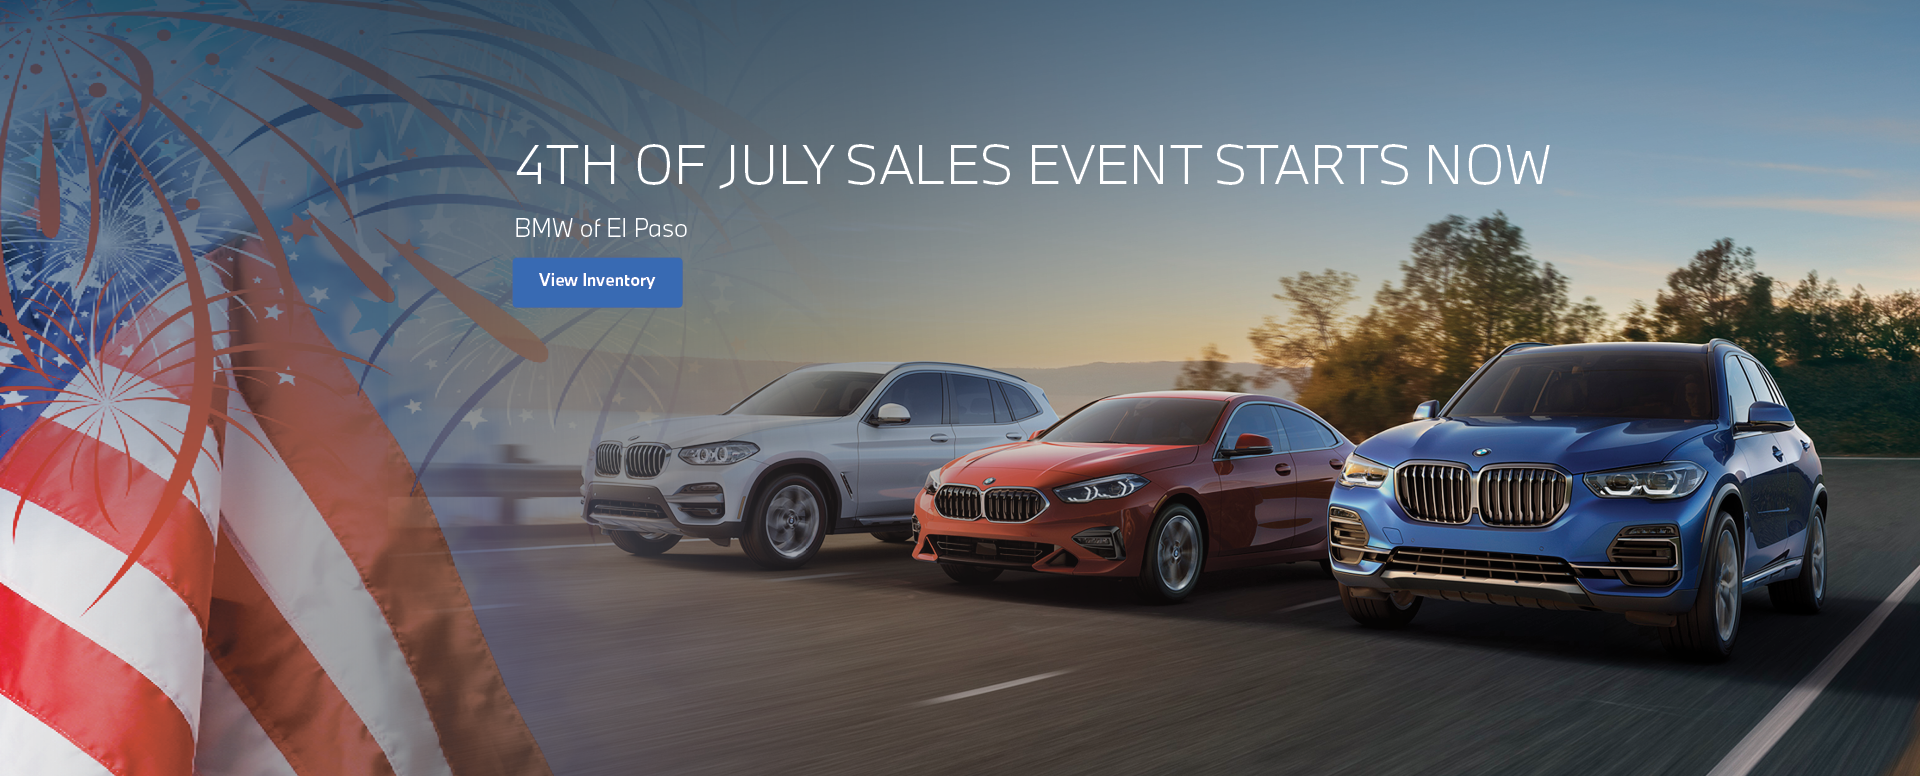 4th-of-July-Sales-Event